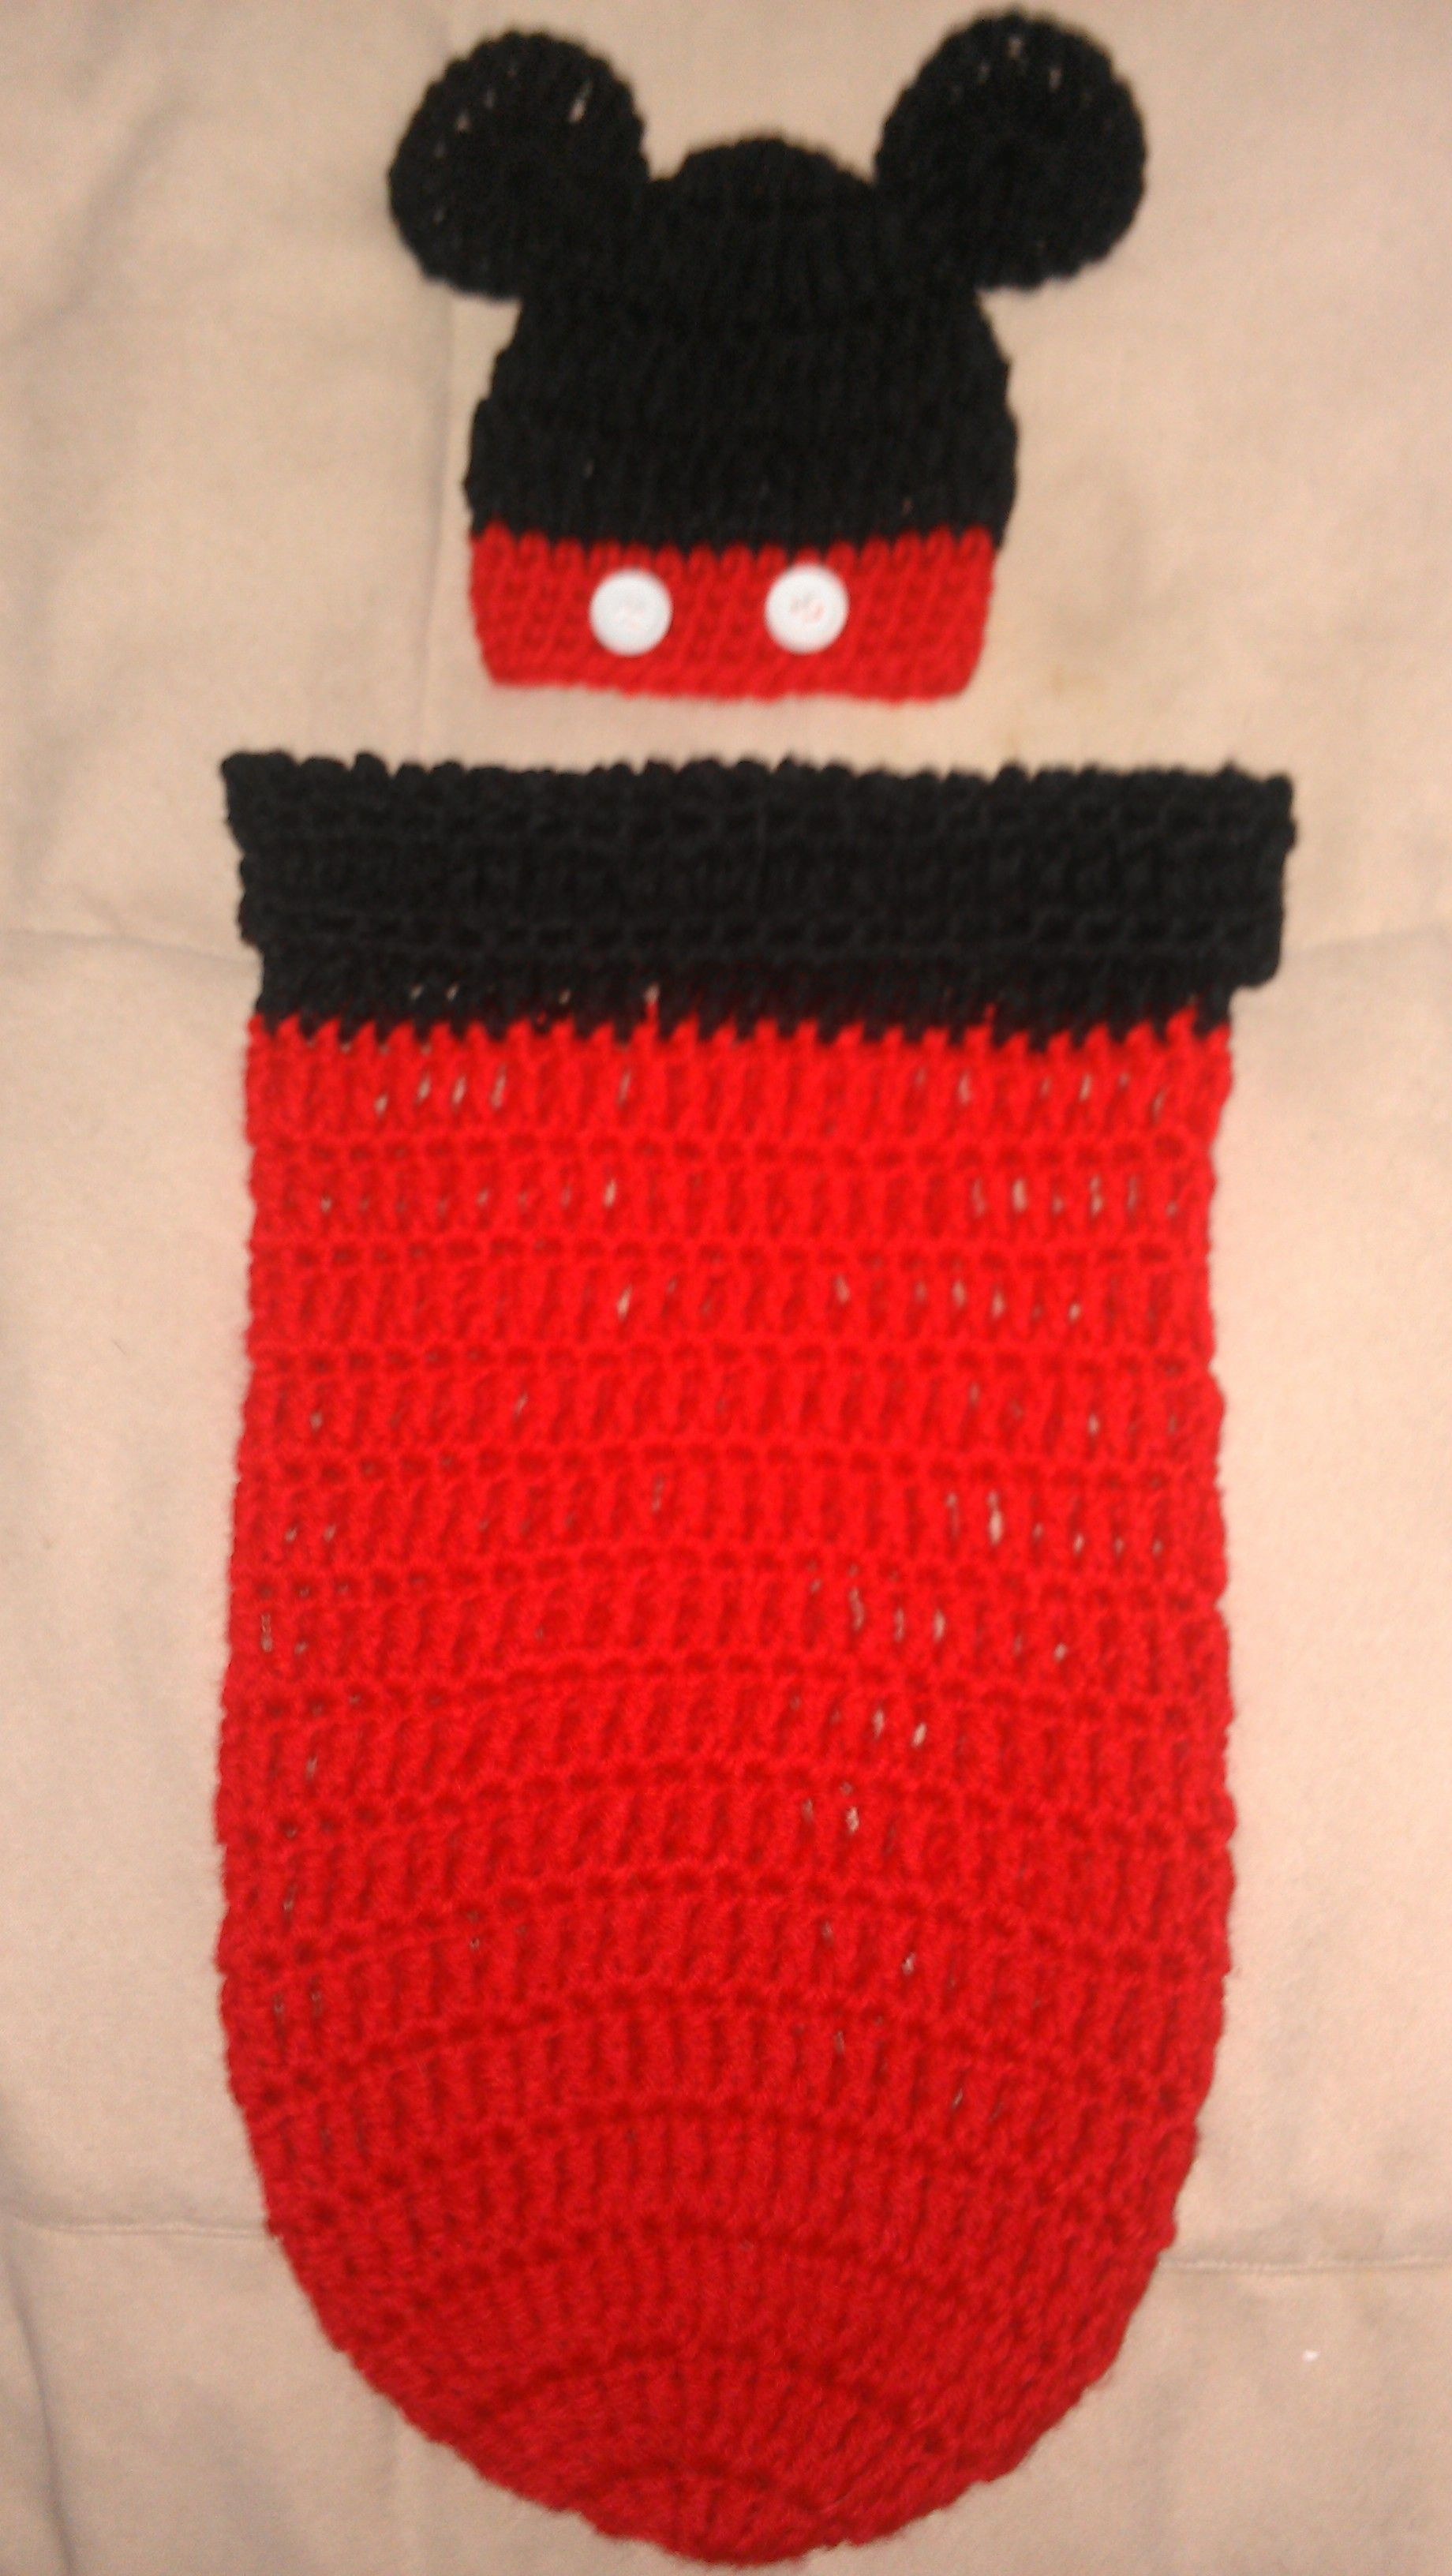 Cottage snuggle sack and hat crochet baby baby cocoon and sacks - Crochet Mickey Mouse Cocoon And Hat Set I Think If I Were To Make This I Would Make The Hat All Black And The Cocoon All Red With The Two White Buttons Near